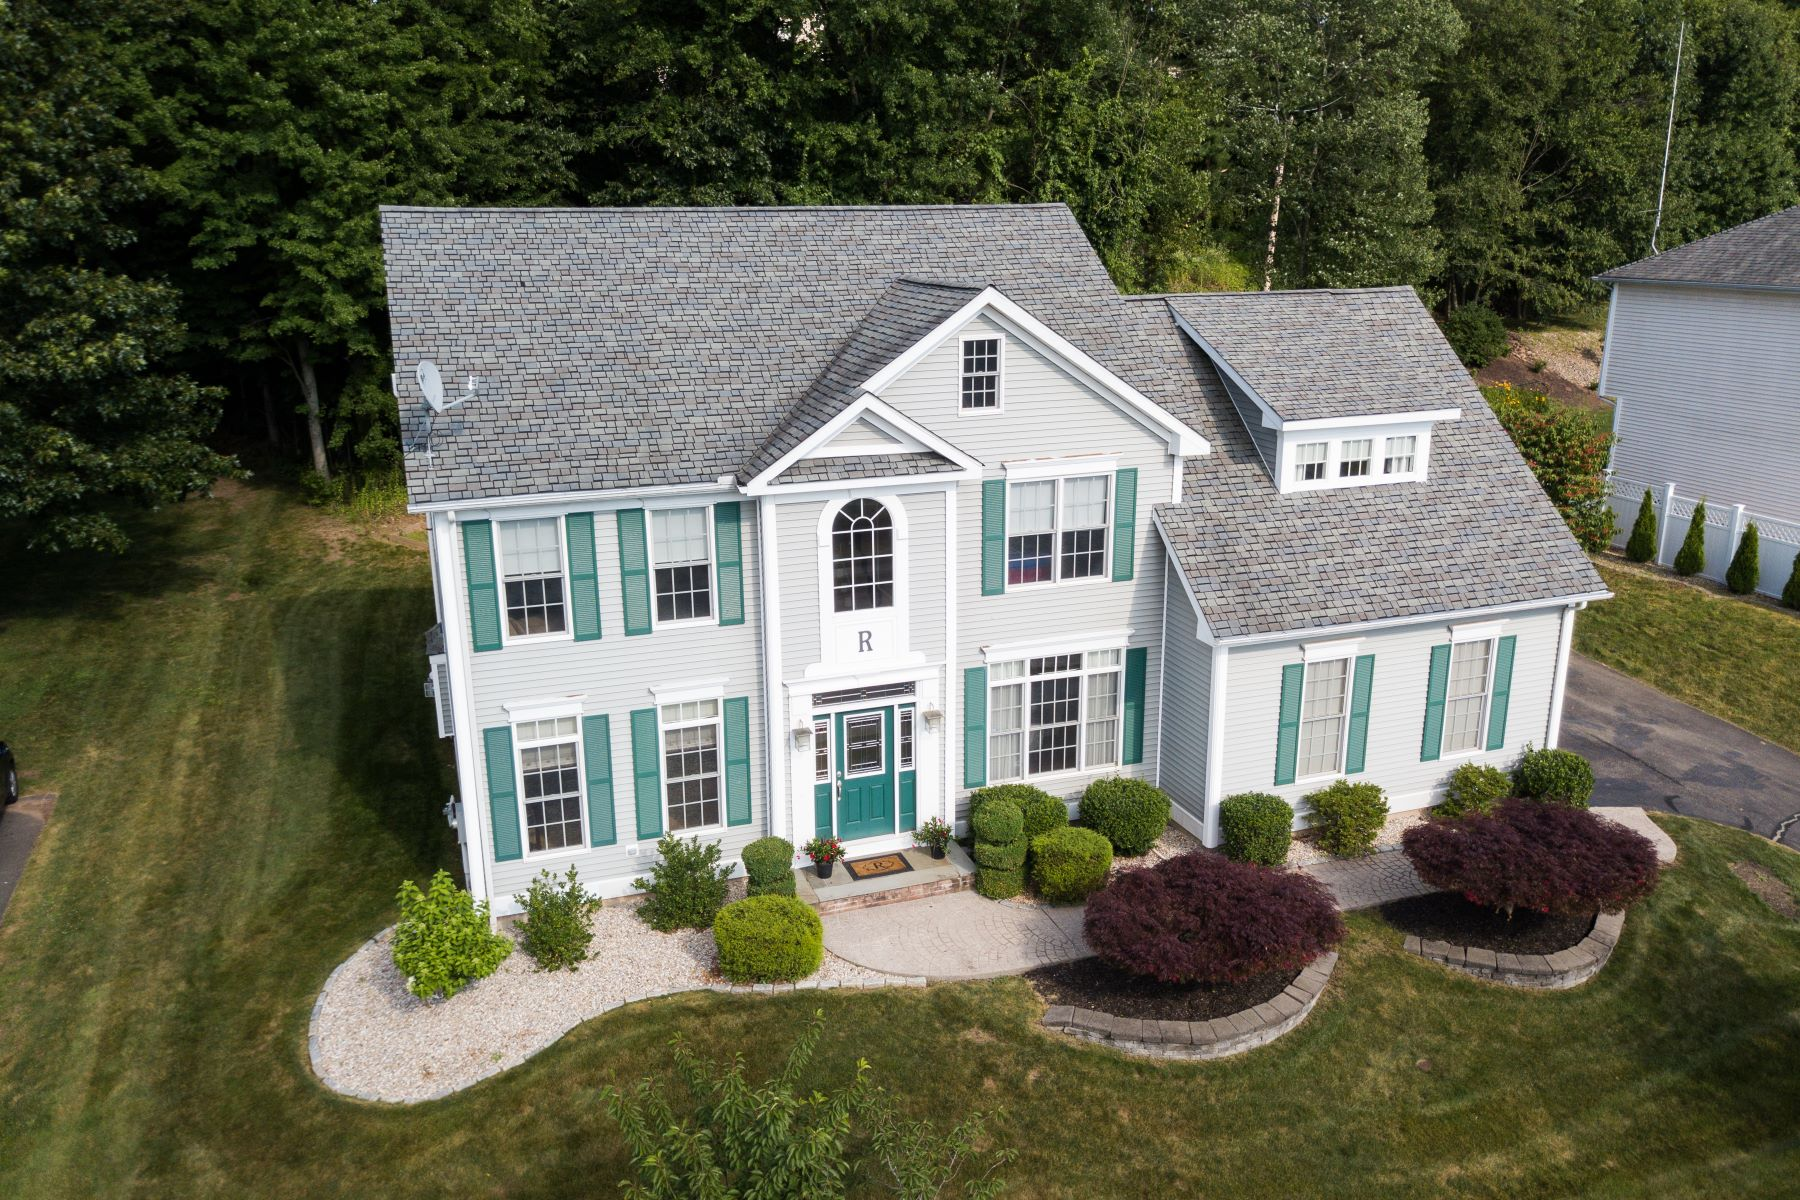 Single Family Homes for Active at Custom Designed Colonial with Stunning Views 50 Chelsea Court Middletown, Connecticut 06457 United States